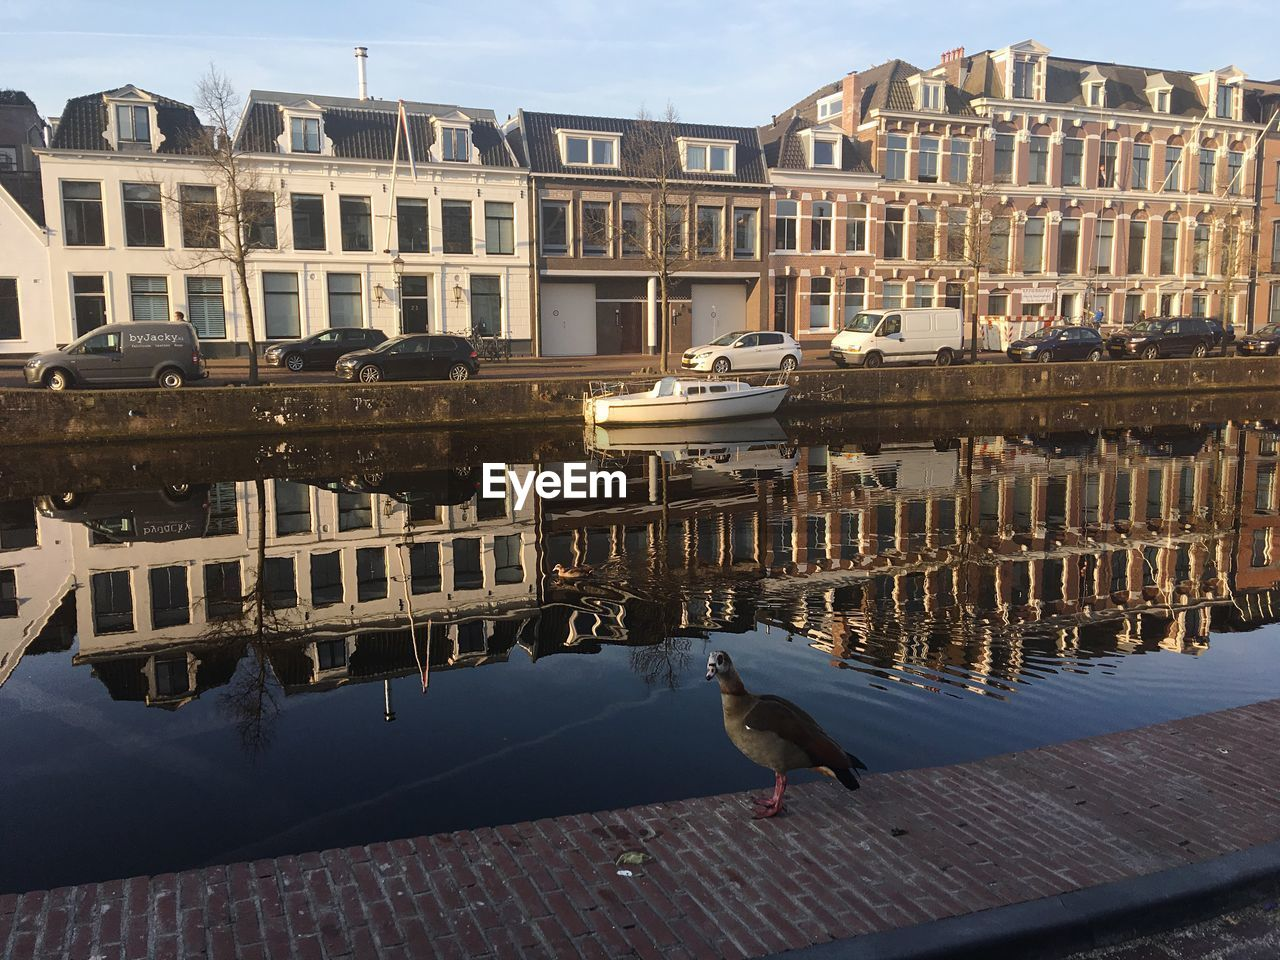 building exterior, built structure, architecture, city, animals in the wild, bird, animal themes, vertebrate, building, animal, animal wildlife, day, nature, water, sky, no people, flying, residential district, outdoors, seagull, canal